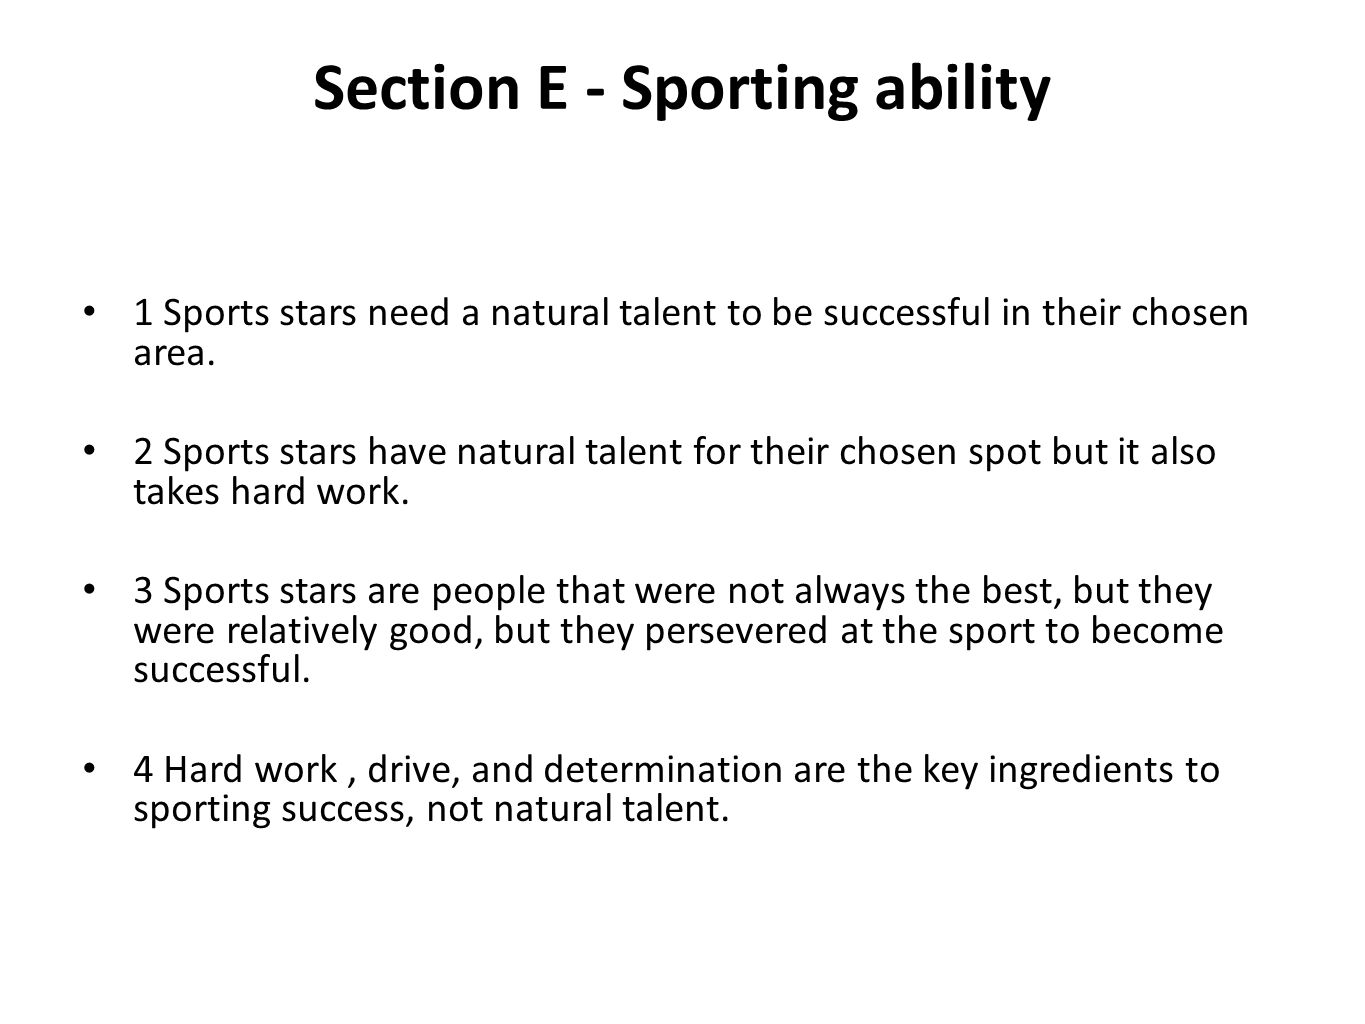 Section E - Sporting ability 1 Sports stars need a natural talent to be successful in their chosen area.